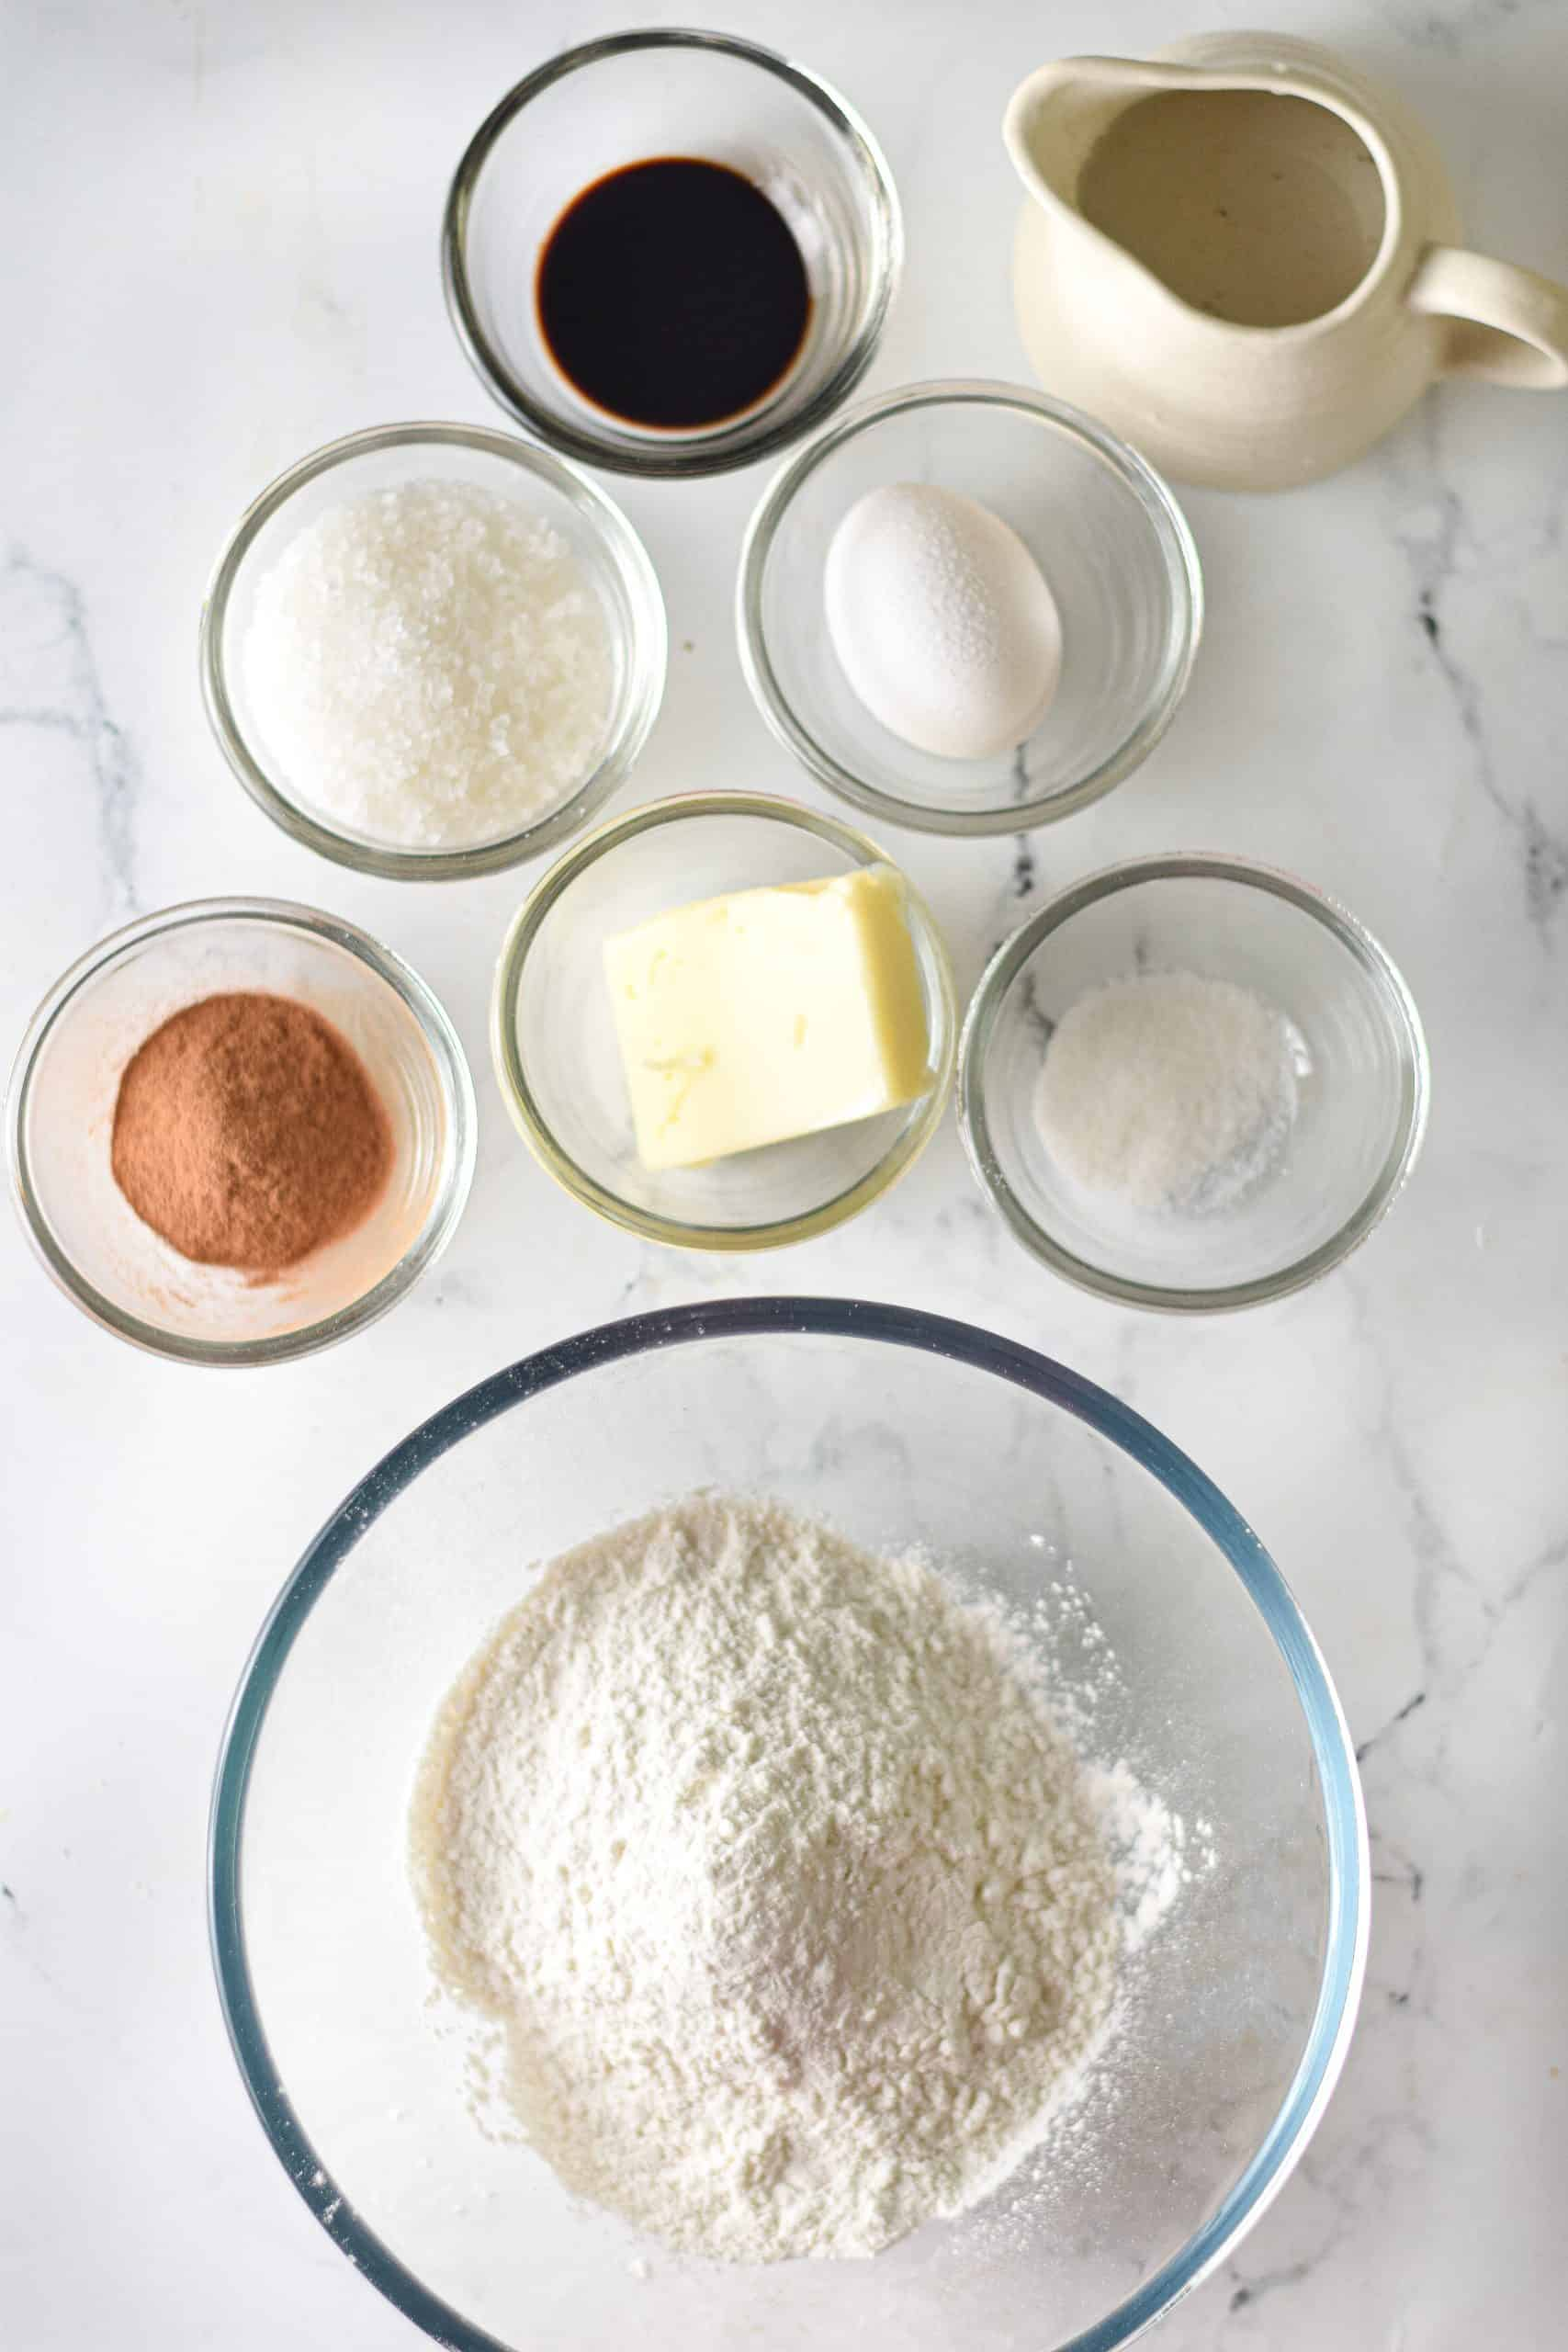 ingredients needed to make homemade churro bites: all purpose-flour, water, unsalted butter, sugar, vanilla extract, egg.